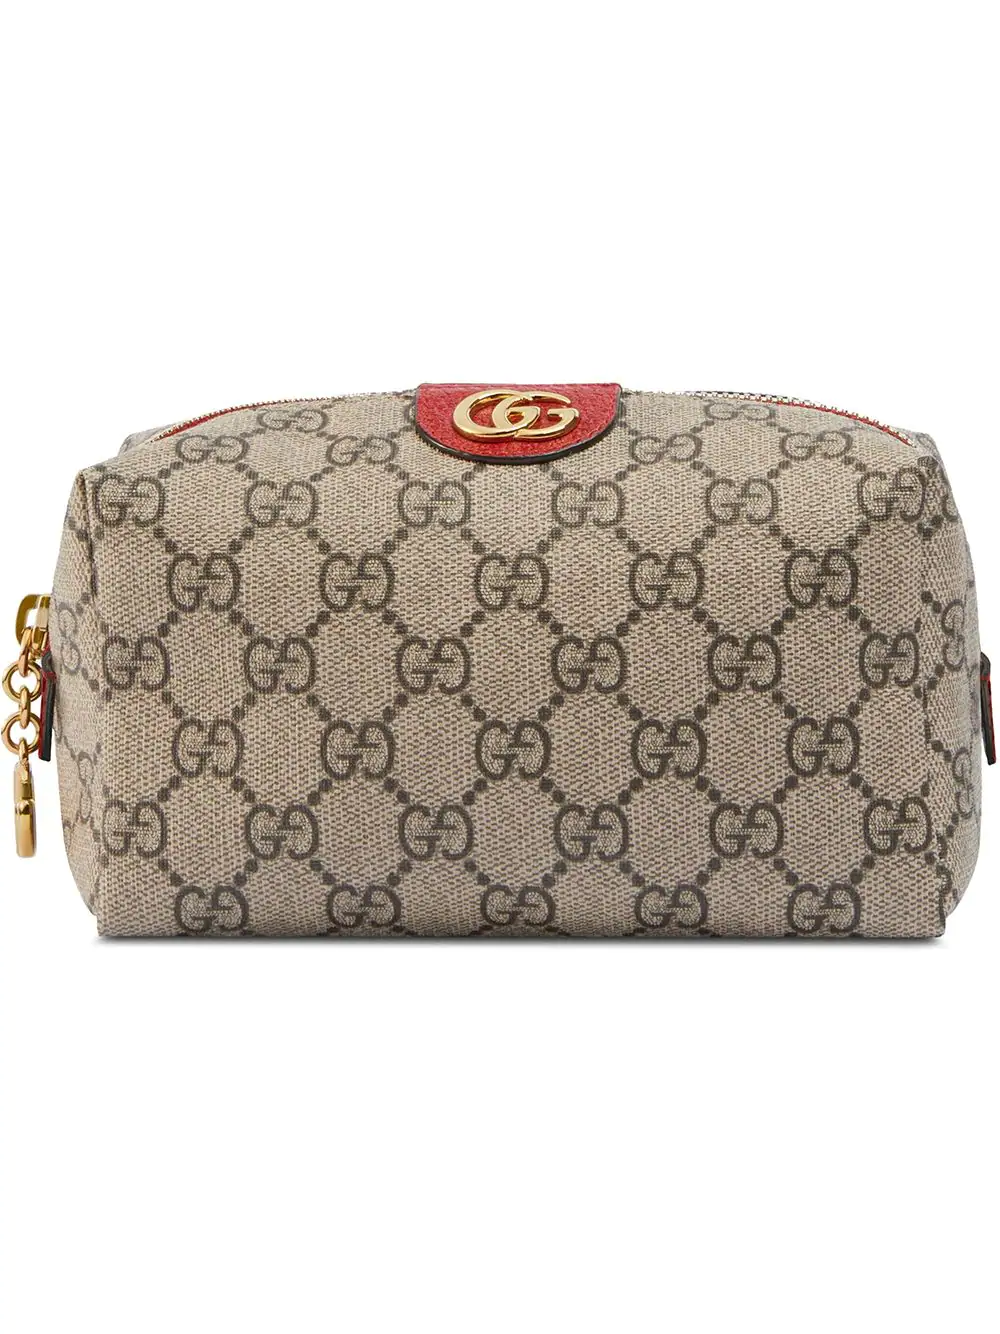 b74bb5596a3efb Gucci Ophidia Gg Supreme Canvas Make-Up Bag In Neutrals | ModeSens